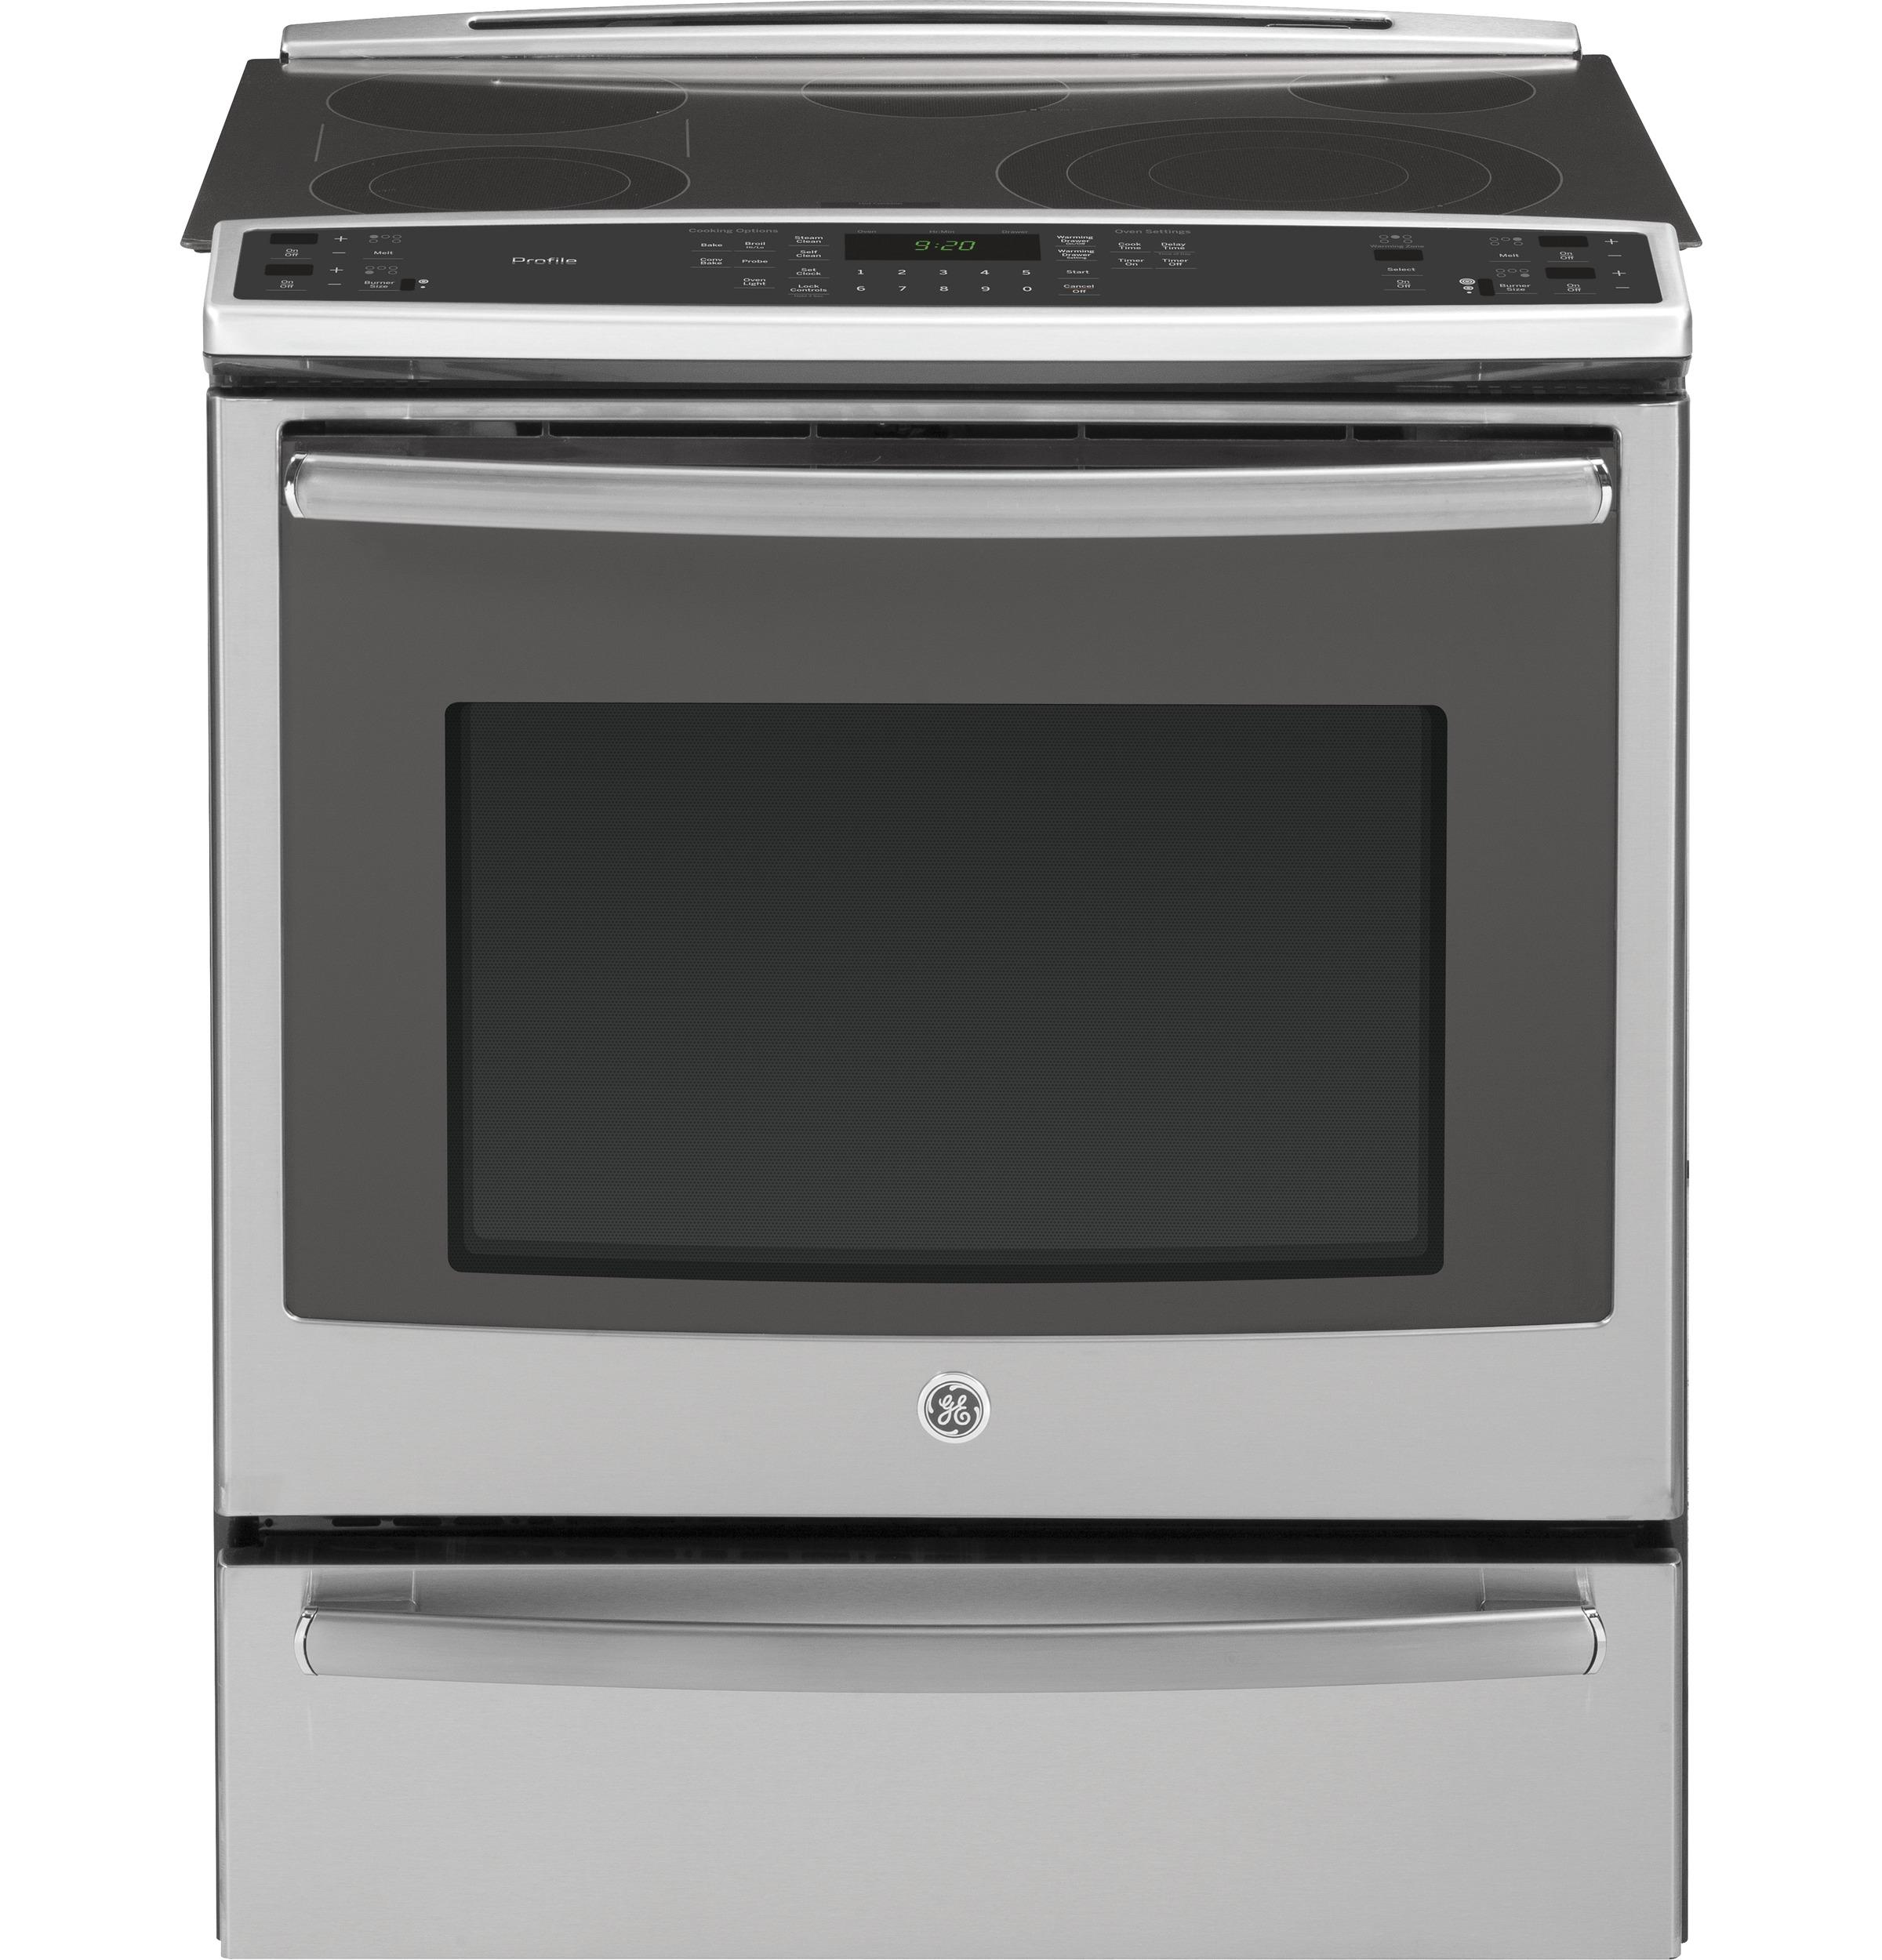 "GE Profile(TM) Series 30"" Slide-In Front Control Electric Convection Range with Warming Drawer